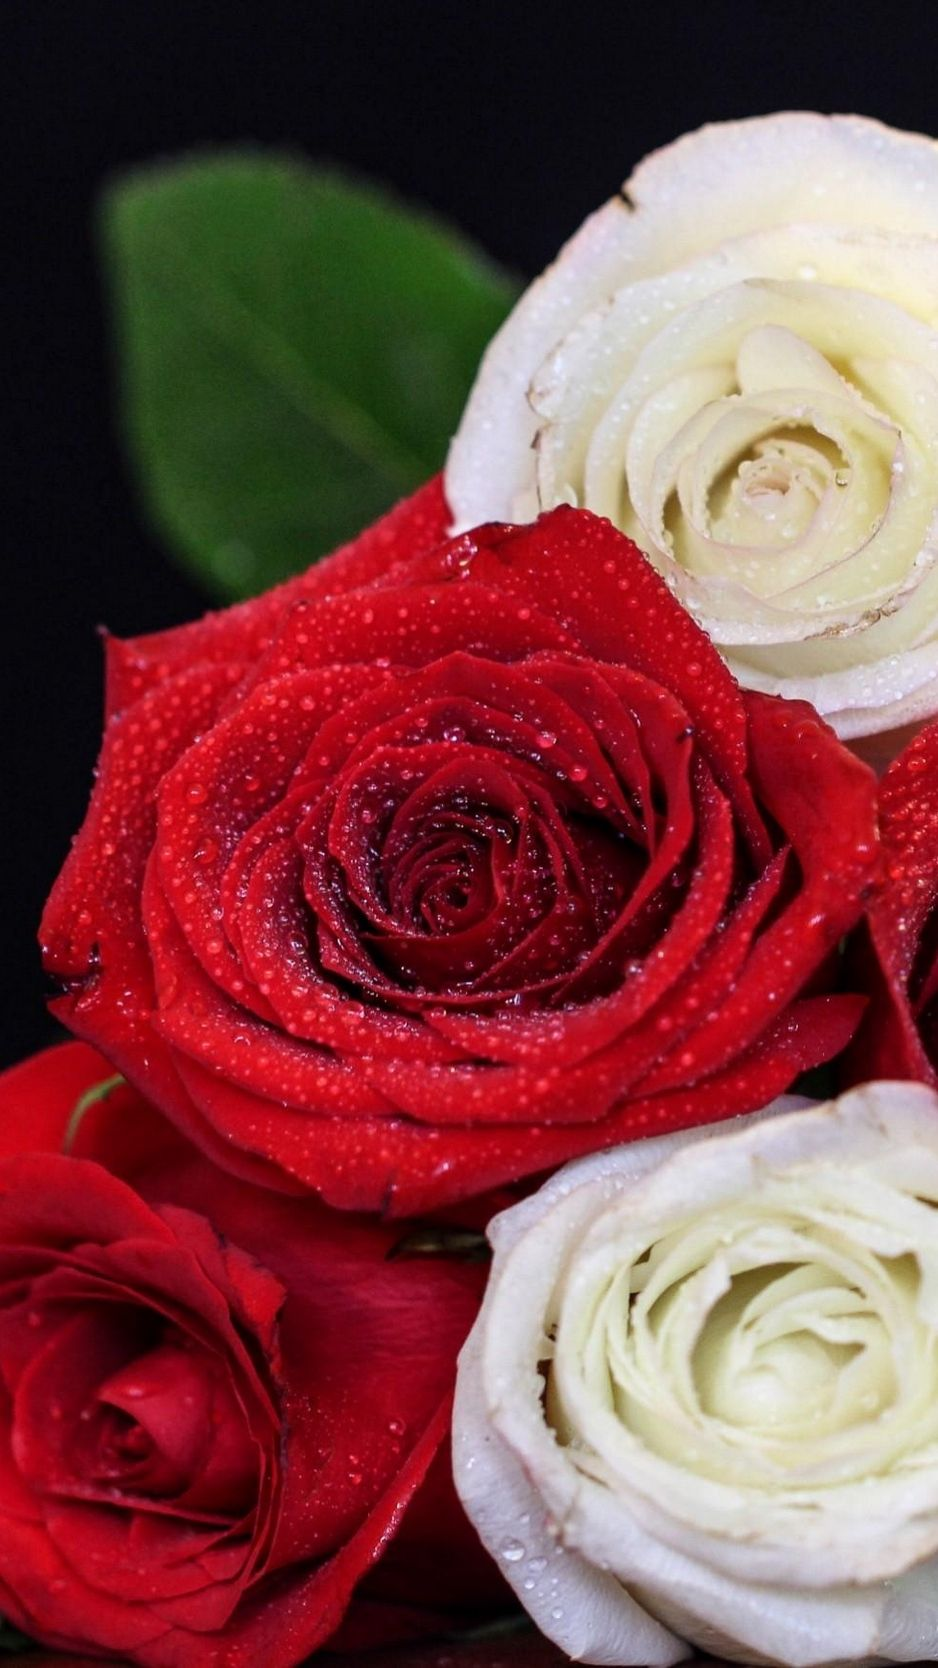 938x1668 Download wallpaper 938x1668 rose, bouquet, red, white, drop ...